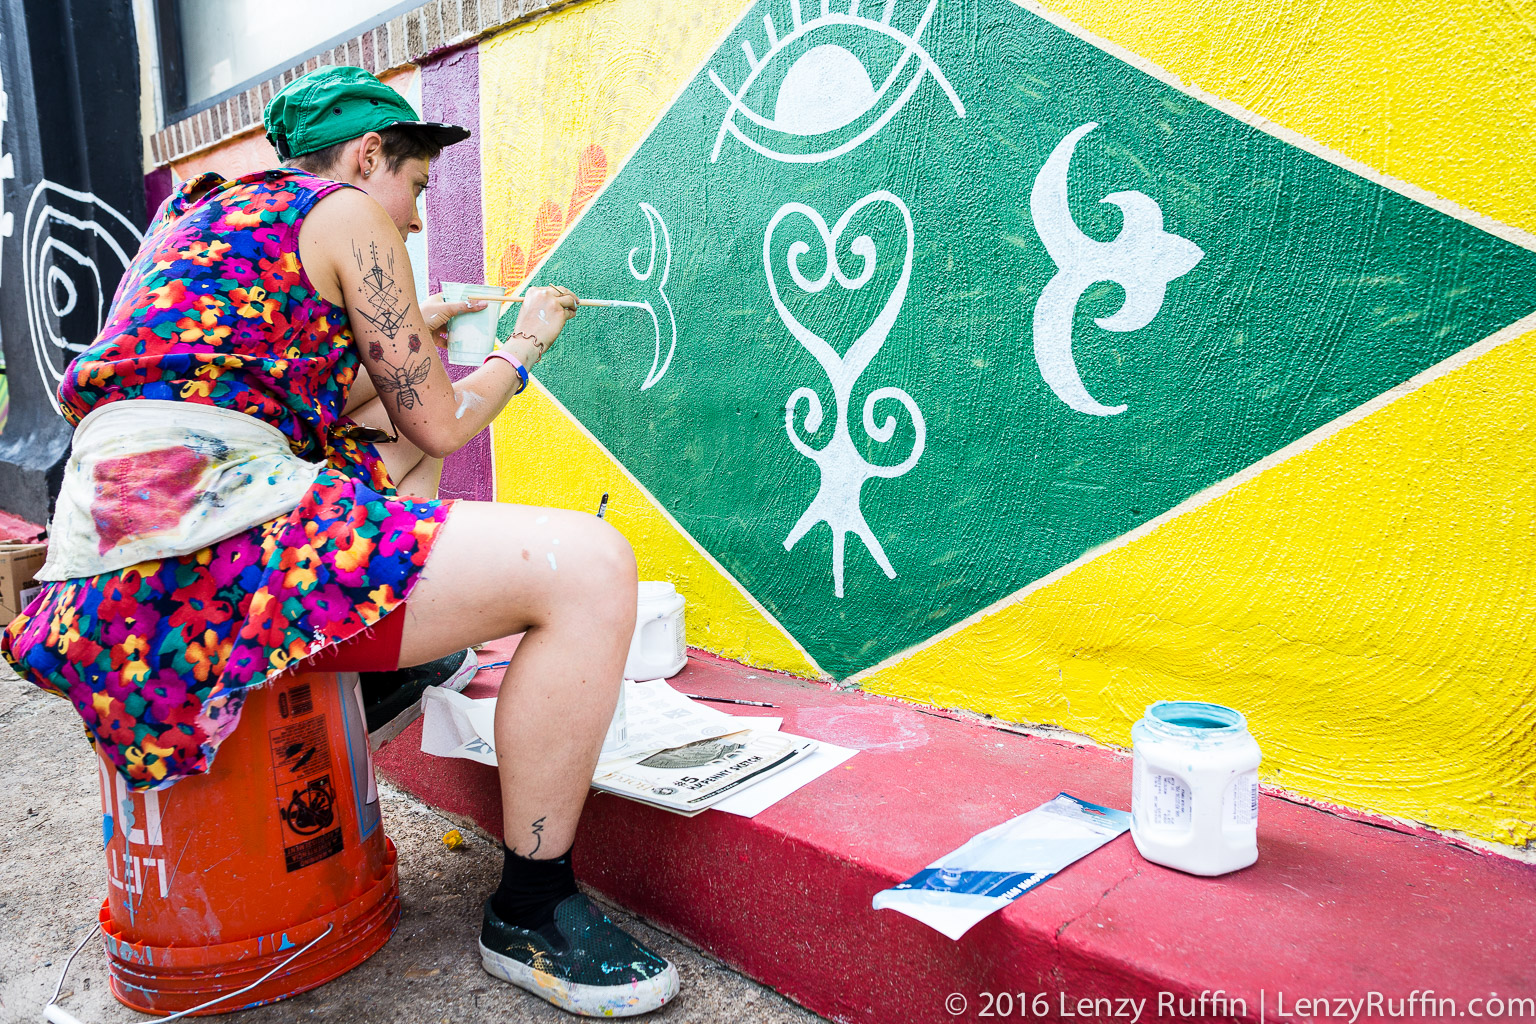 Rose Jaffe (@rose_inks on IG) beautifying the wall in front of Hands On Drums DC.